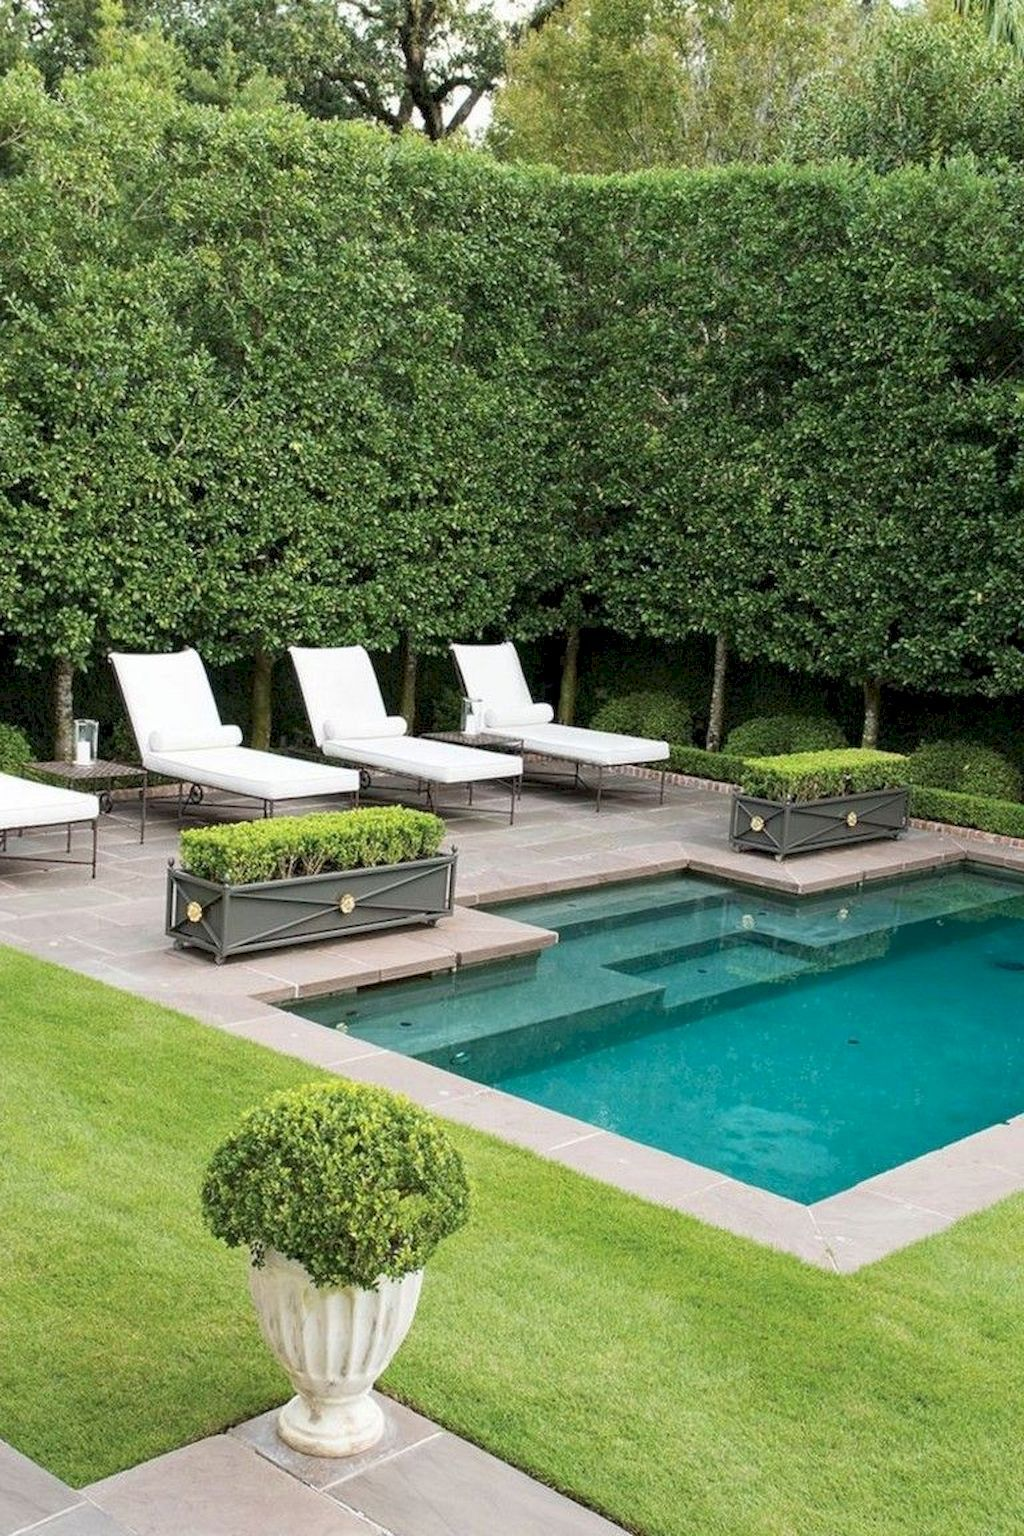 Awesome 90 Small Backyard Swimming Pool Ideas And Design Https Architeworks Com 90 Small B Backyard Pool Designs Swimming Pools Backyard Small Backyard Pools